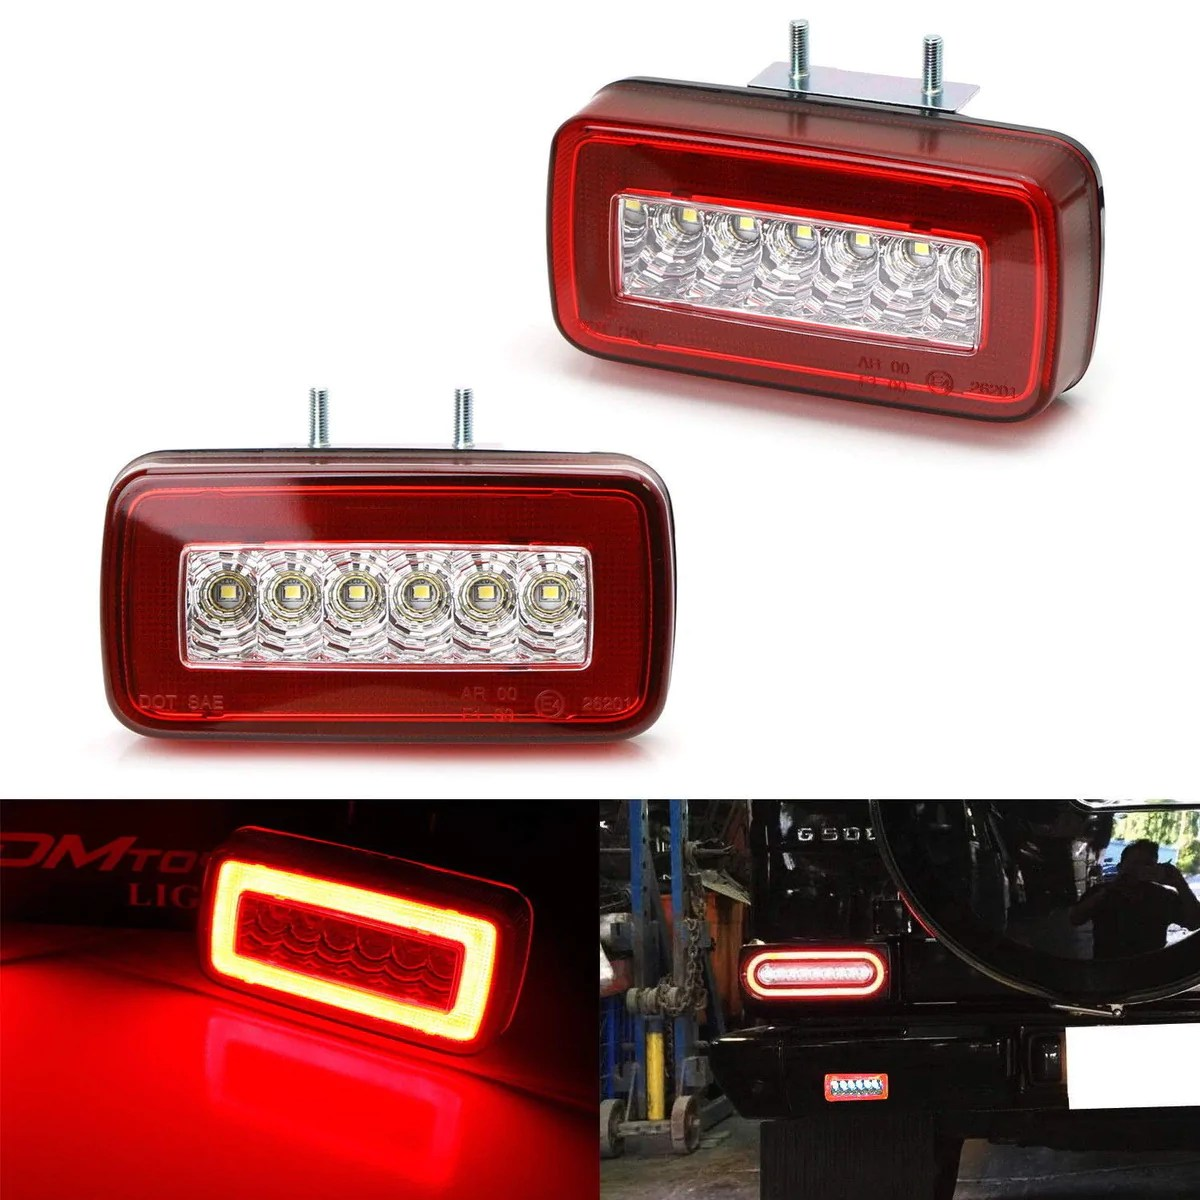 medium resolution of red or smoked lens 3 in 1 led rear fog backup light kit for 1986 2018 mercedes benz w463 g class g500 g550 g55 g63 amg functions as rear fog driving brake